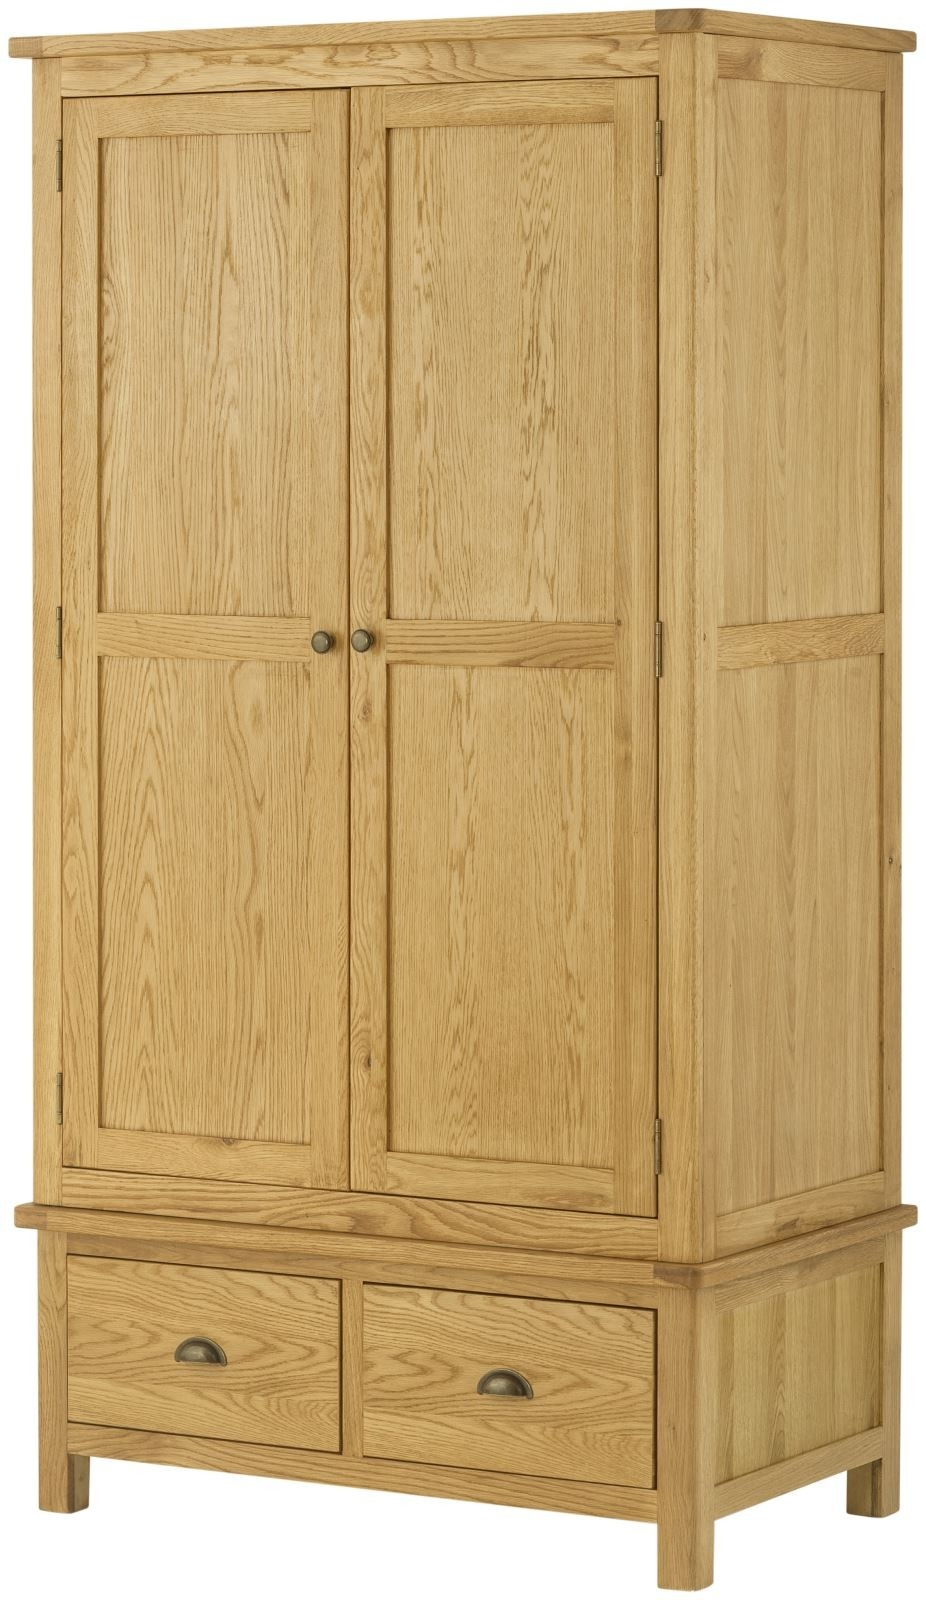 Portland Oak 2 Door Combi Gents Wardrobe